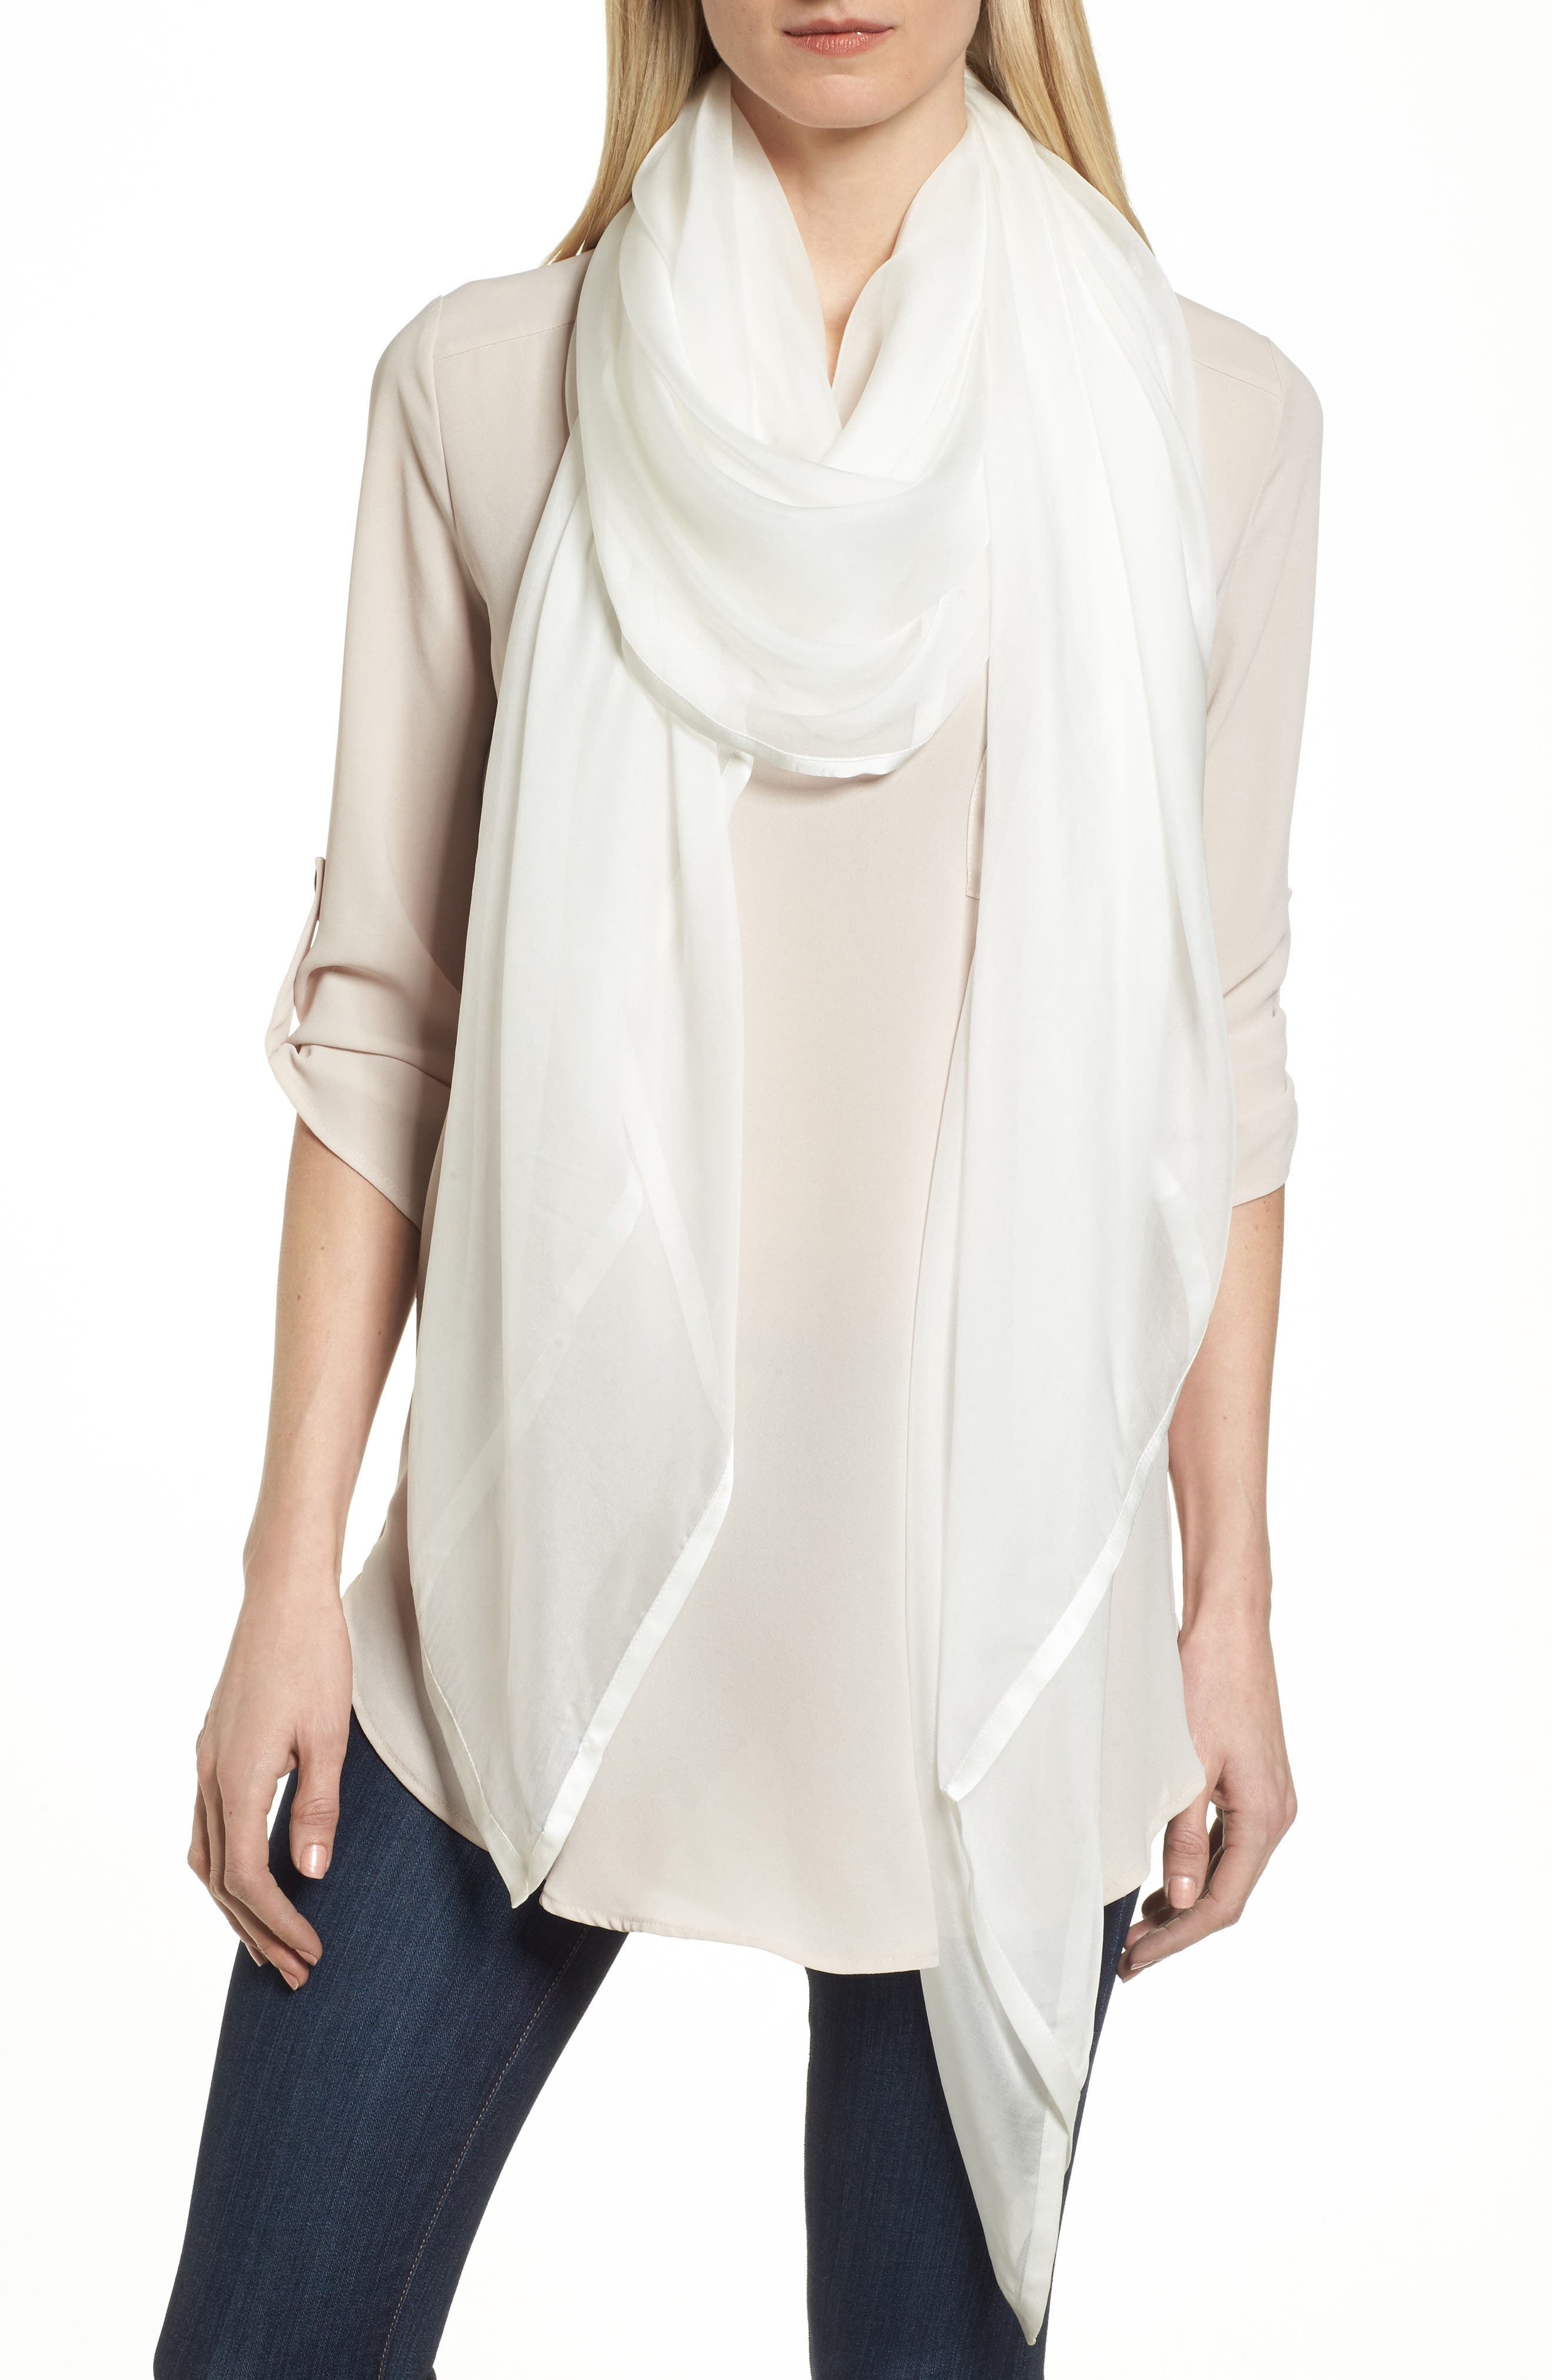 Lustrous satin trim edges a gorgeous scarf in sheer, gauzy silk chiffon sized to double as an elegant wrap for those special nights out. Style Name: Nordstrom Satin Border Silk Chiffon Scarf. Style Number: 5384117. Available in stores.